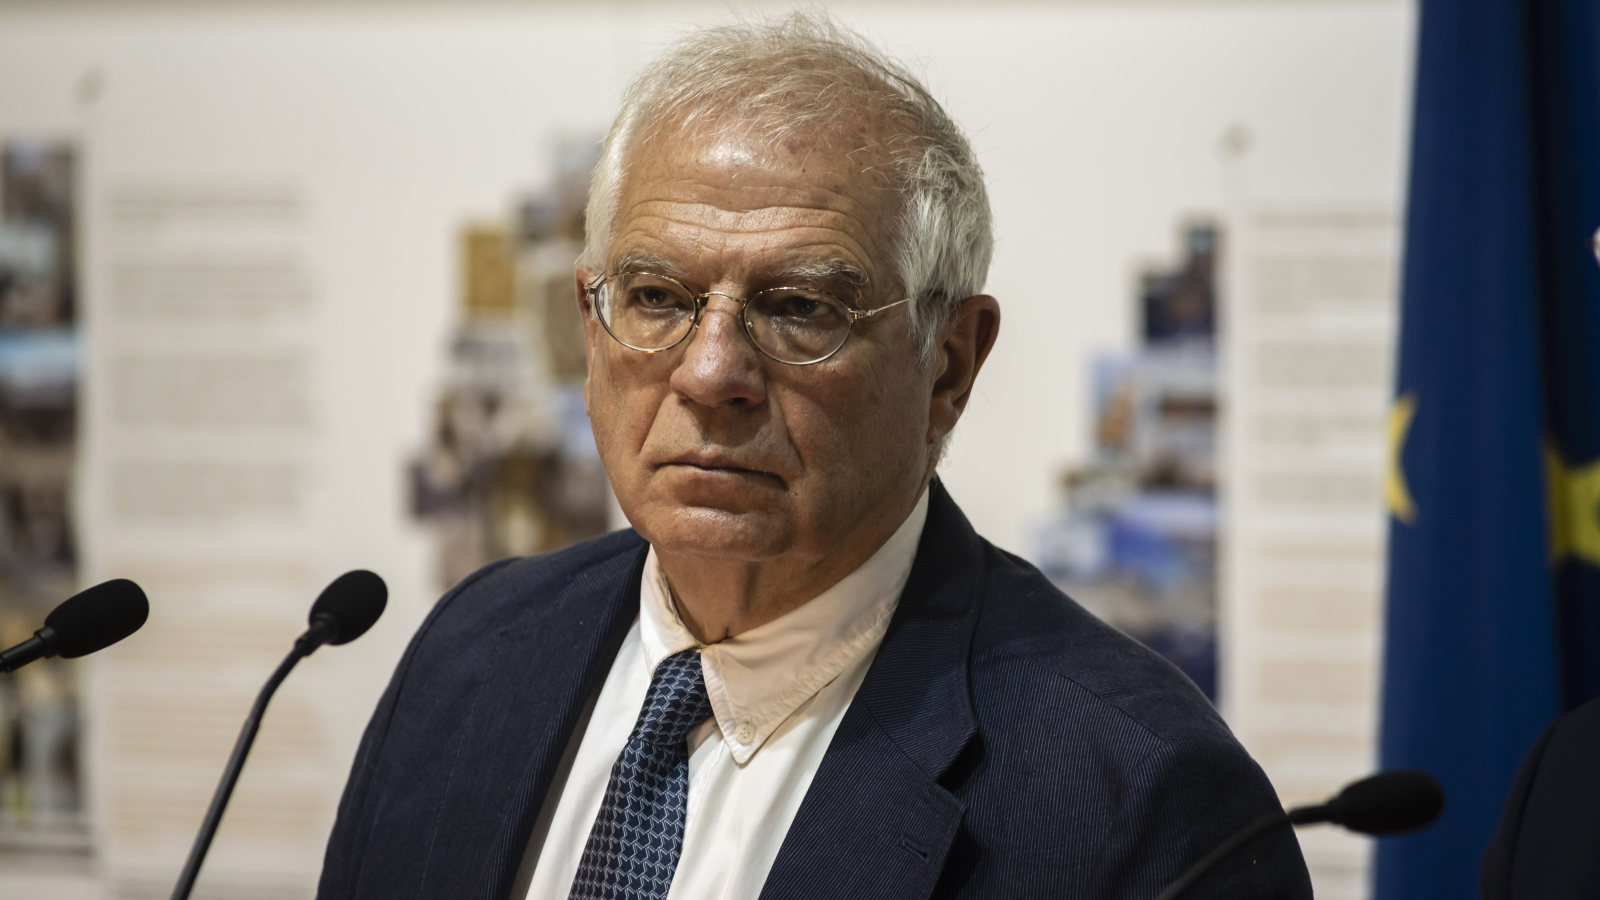 High Representative/Vice President Josep Borrell